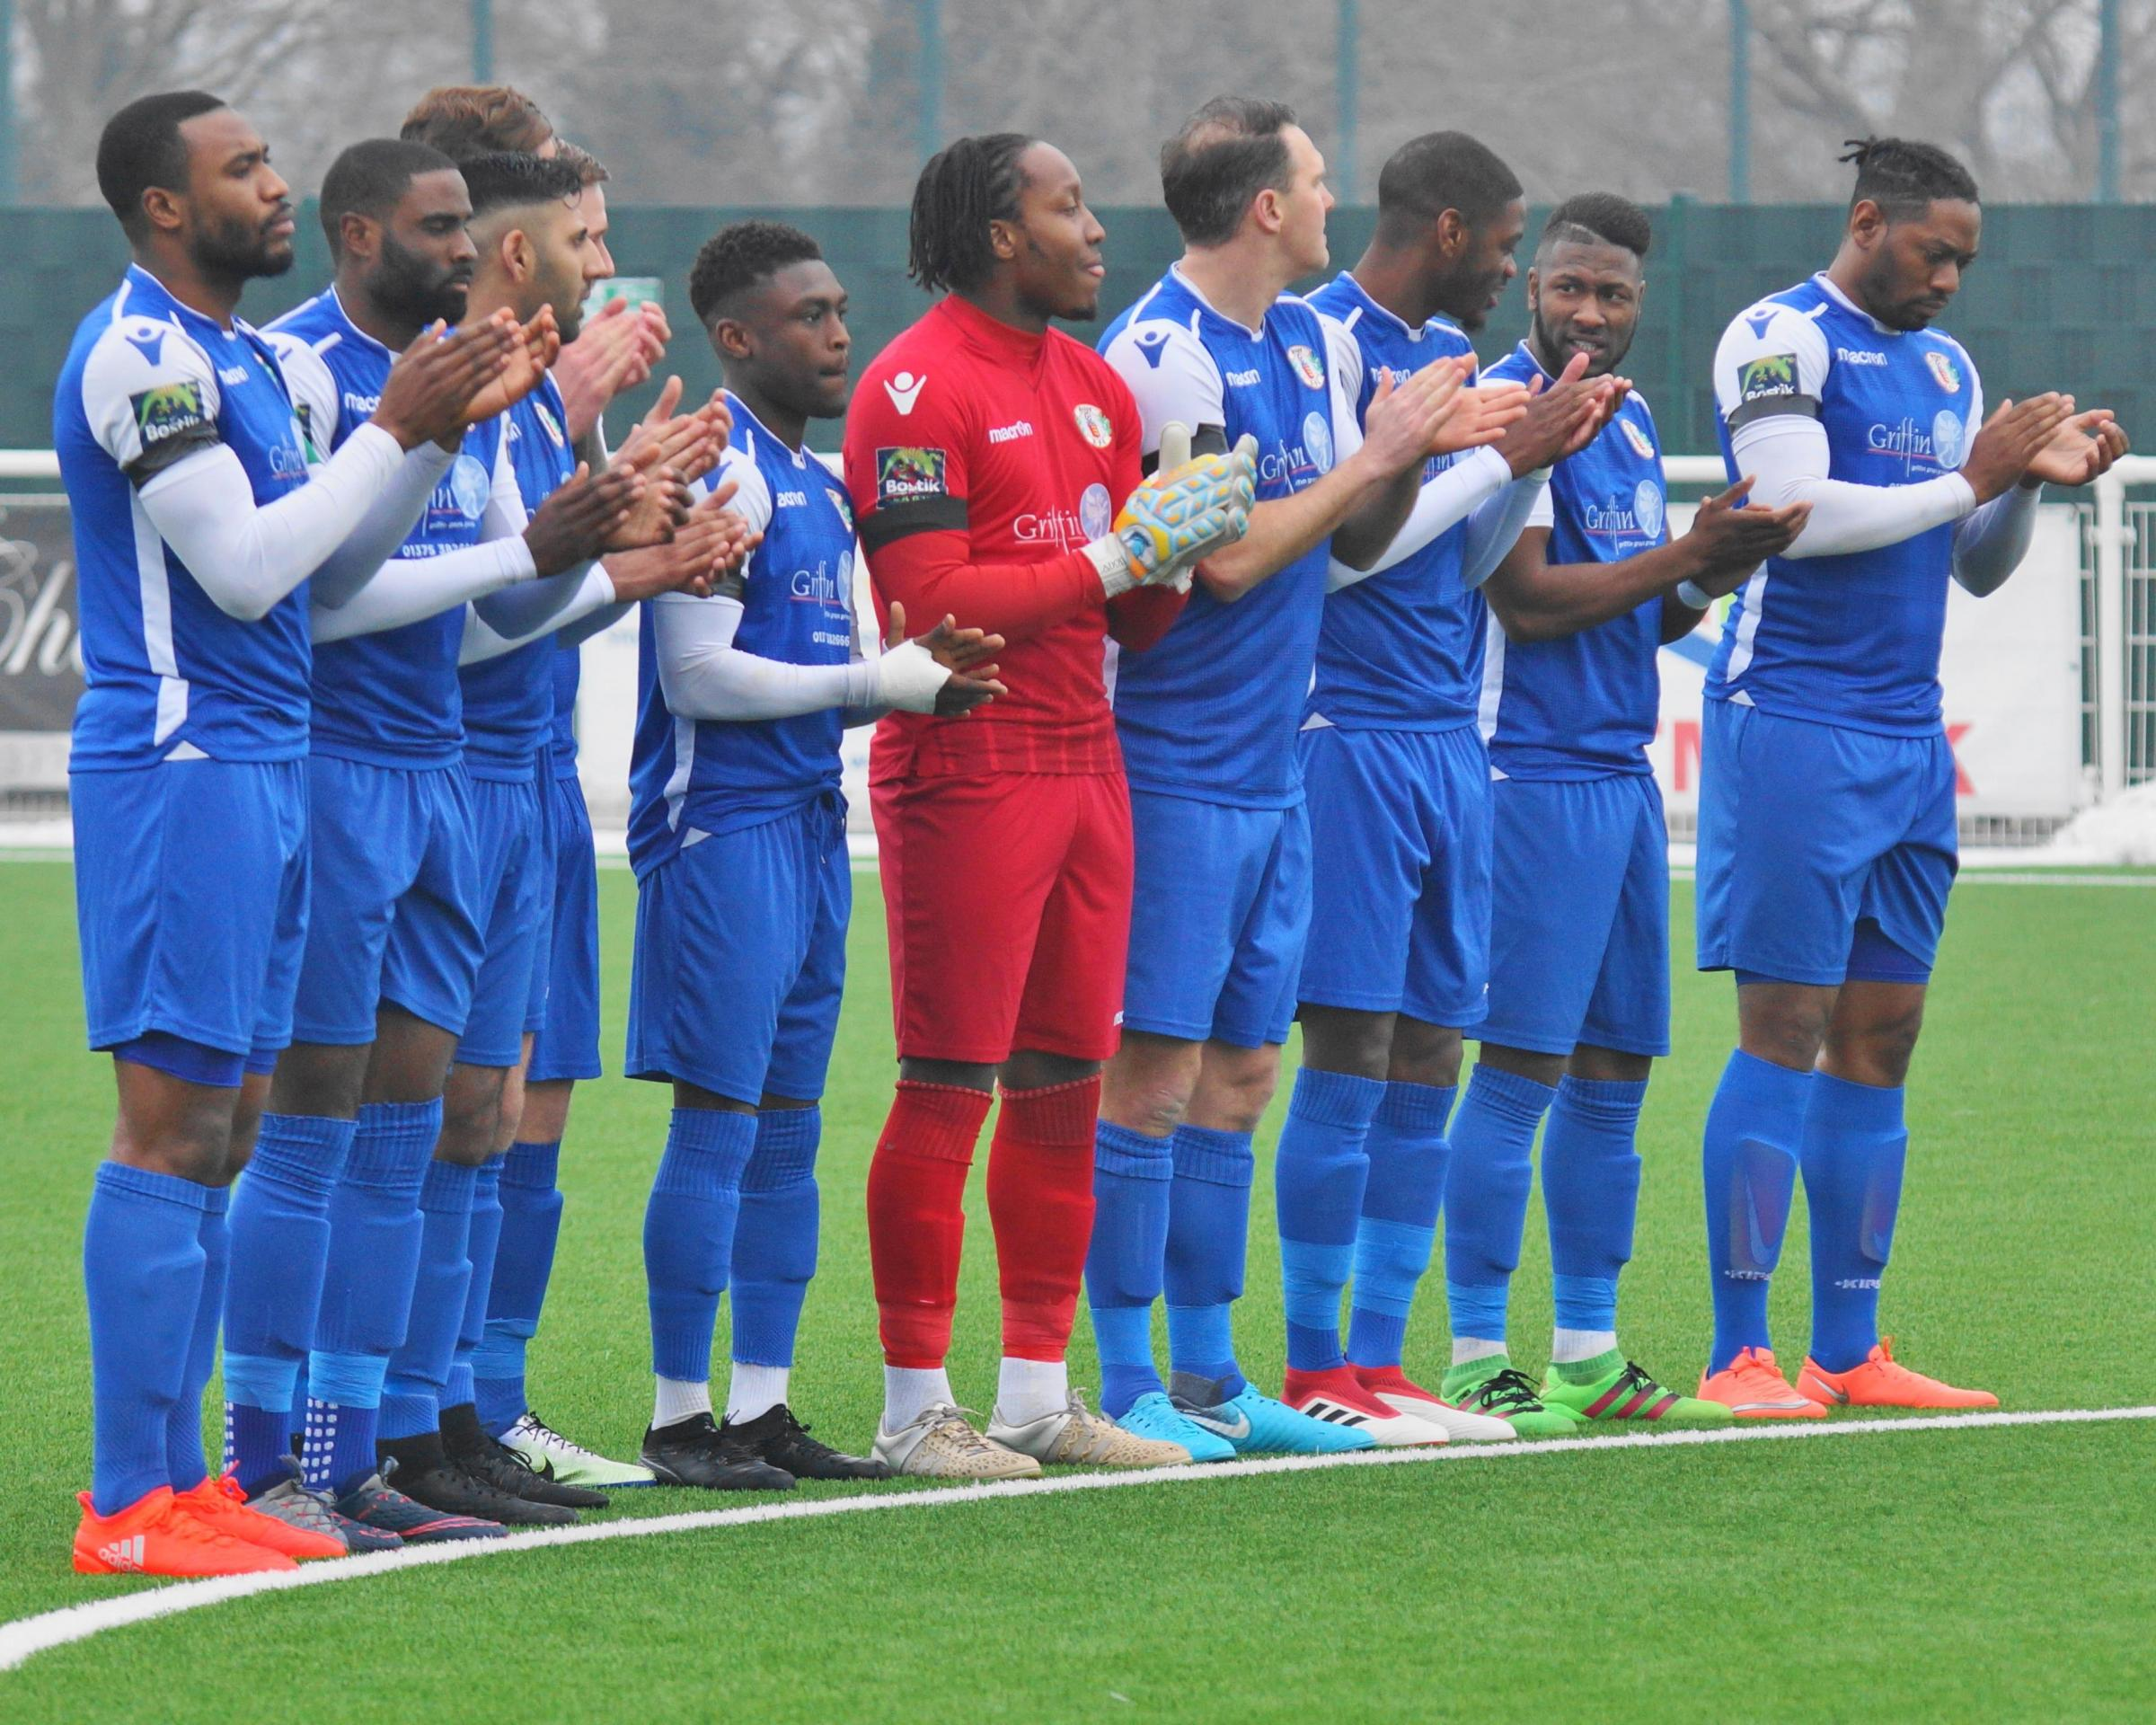 Talented squad - Grays Athletic      Picture: PETER JACKSON